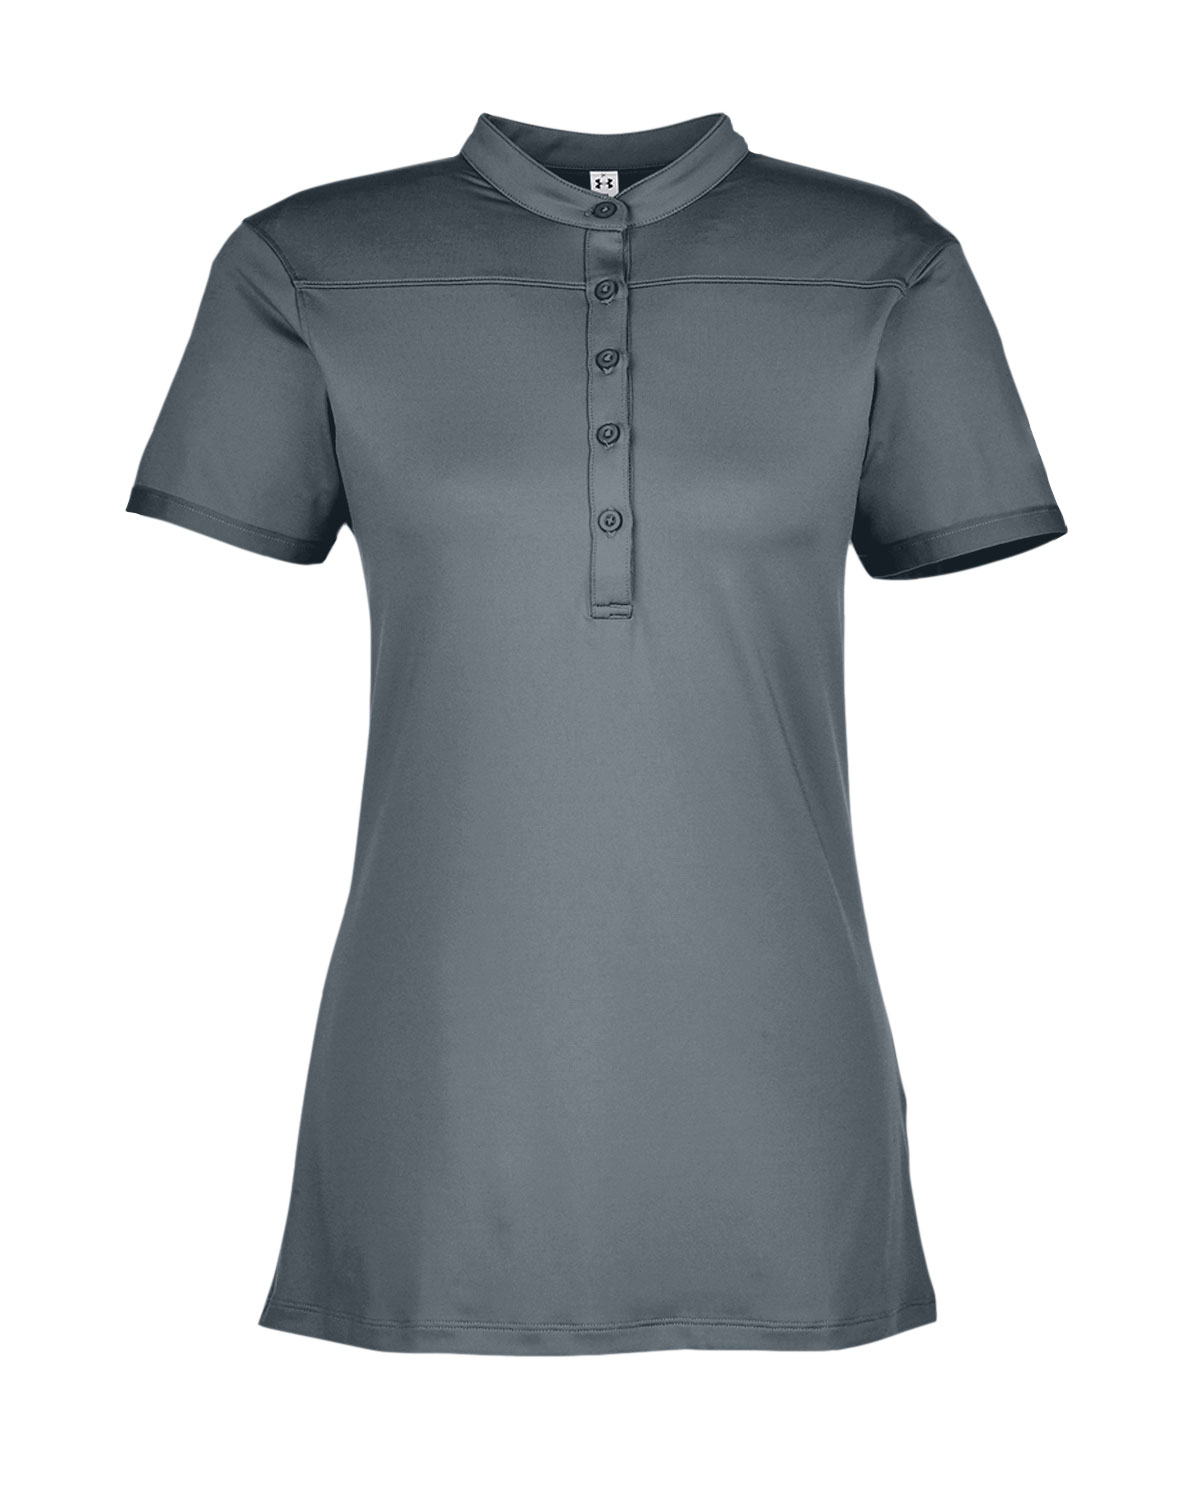 Under Armour Ladies Corporate Performance Polo 2.0